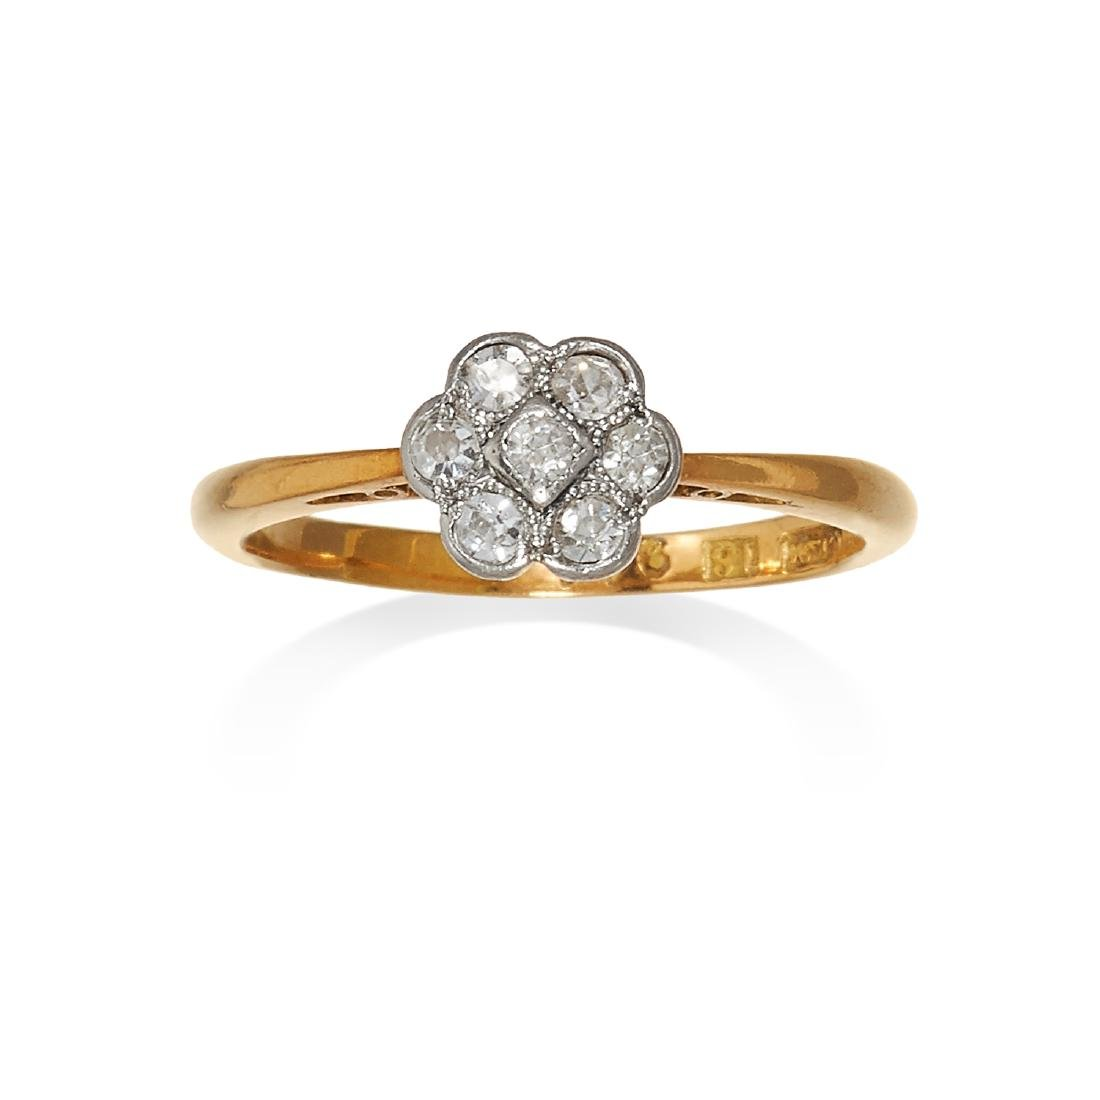 AN ANTIQUE DIAMOND CLUSTER RING in 18ct yellow gold,